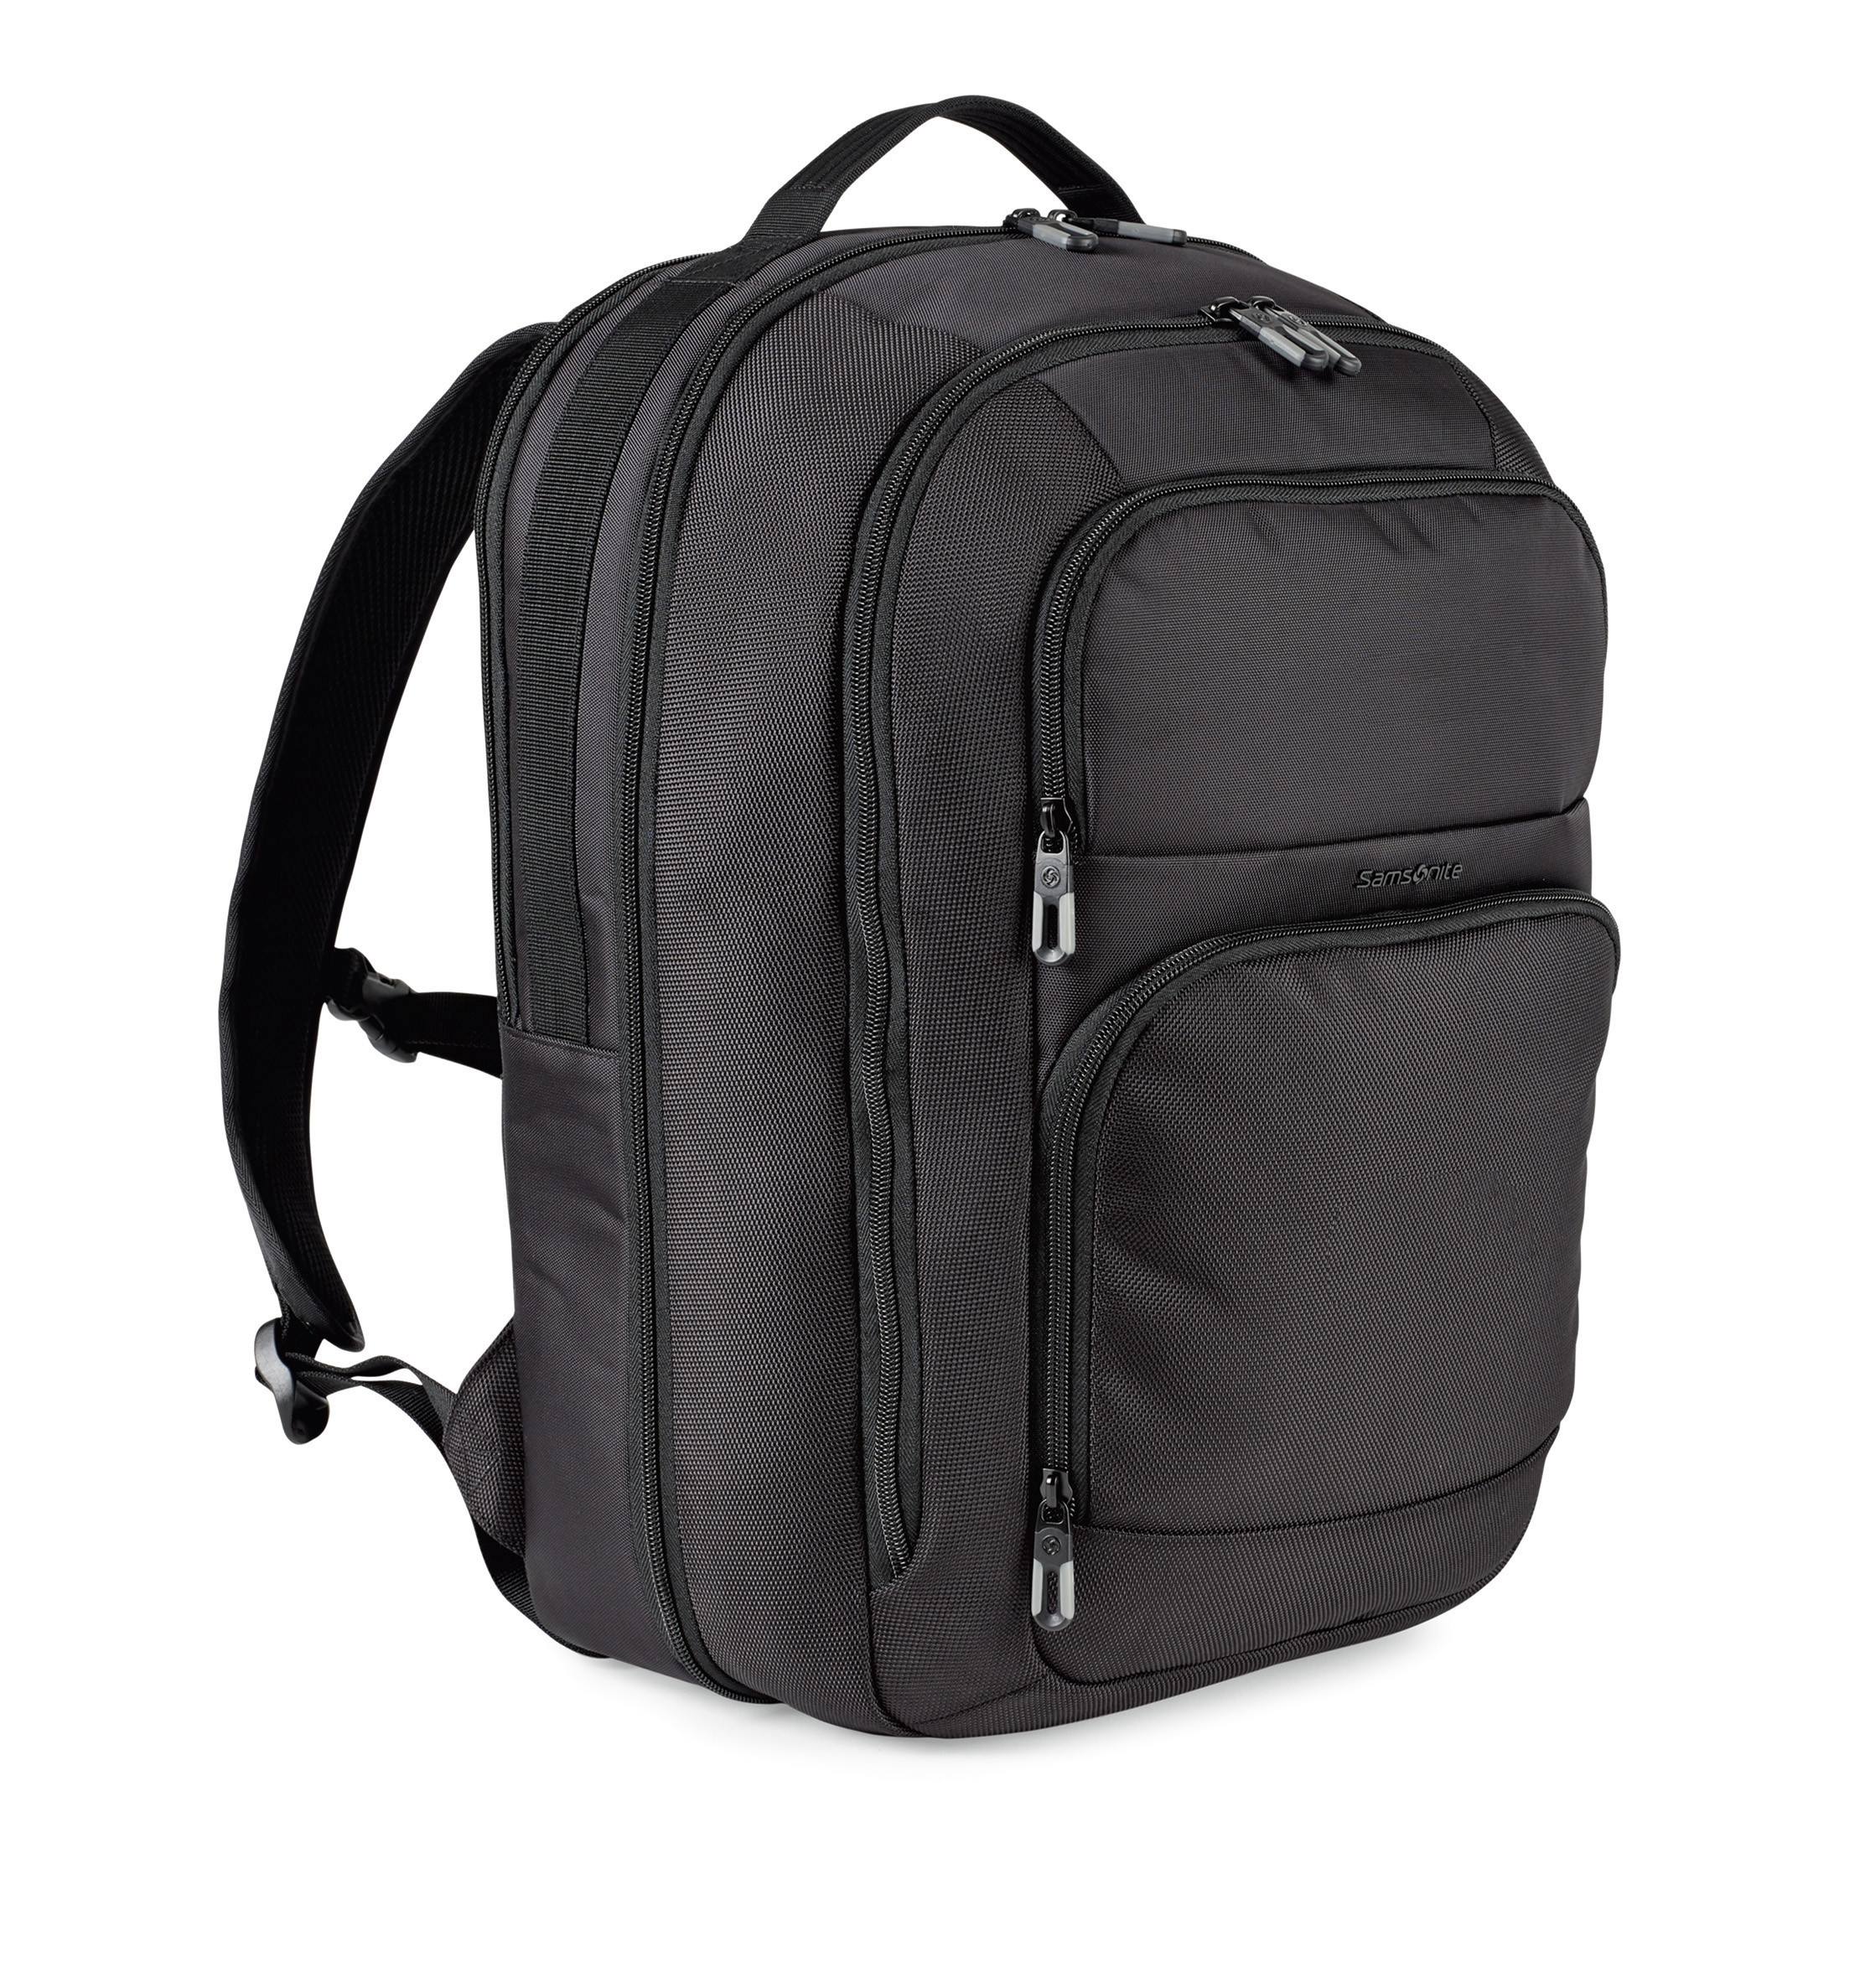 Samsonite 95078 - Travel Warrior Computer Backpack